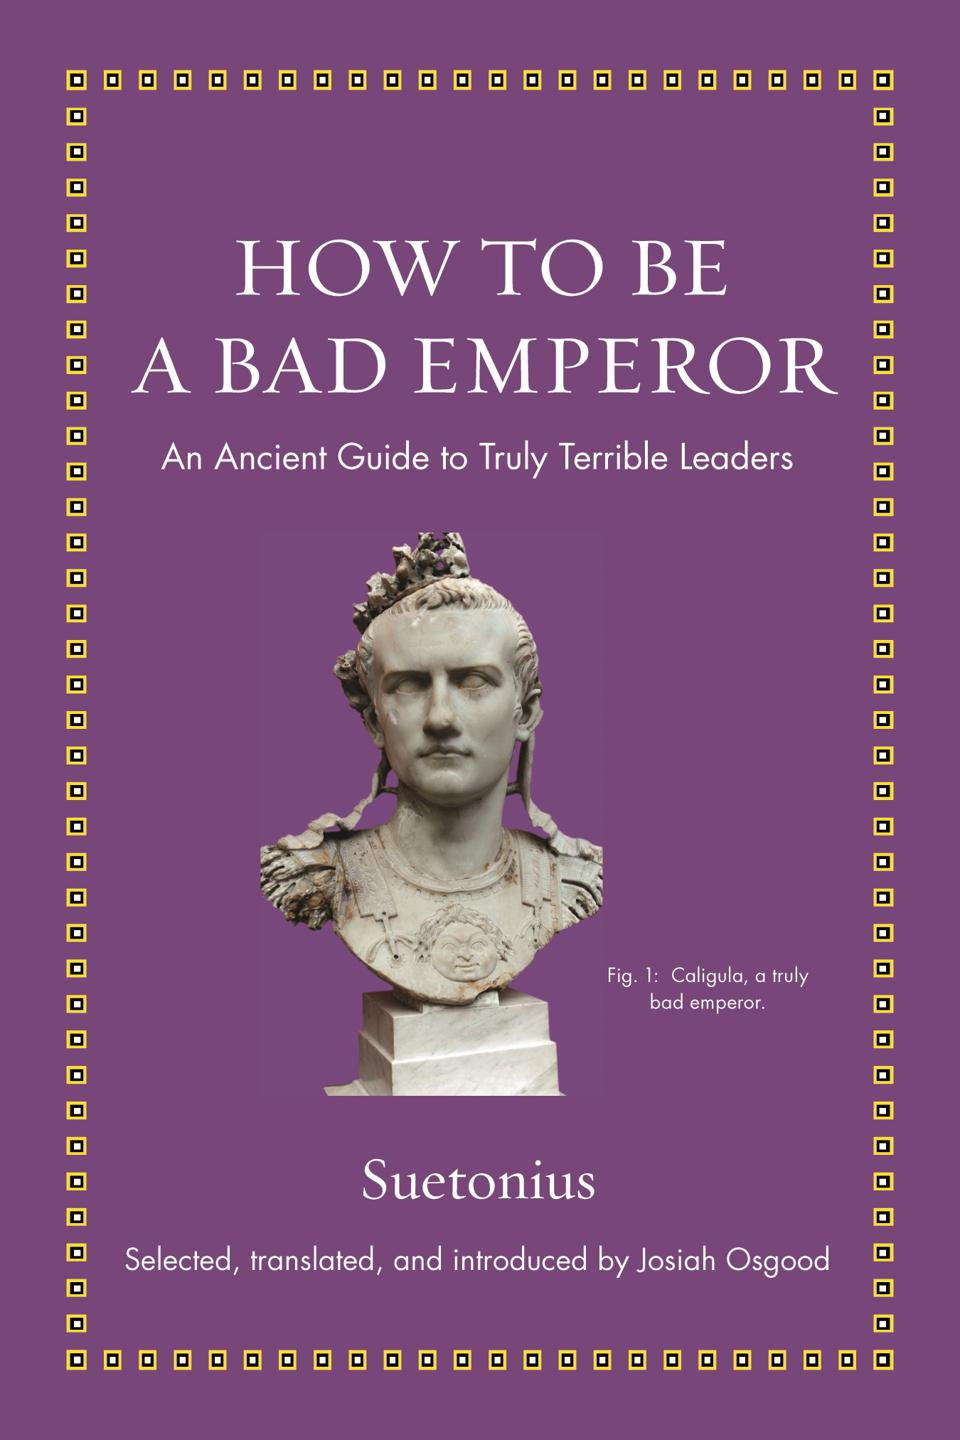 Cover of new book ″How To Be A Bad Emperor″